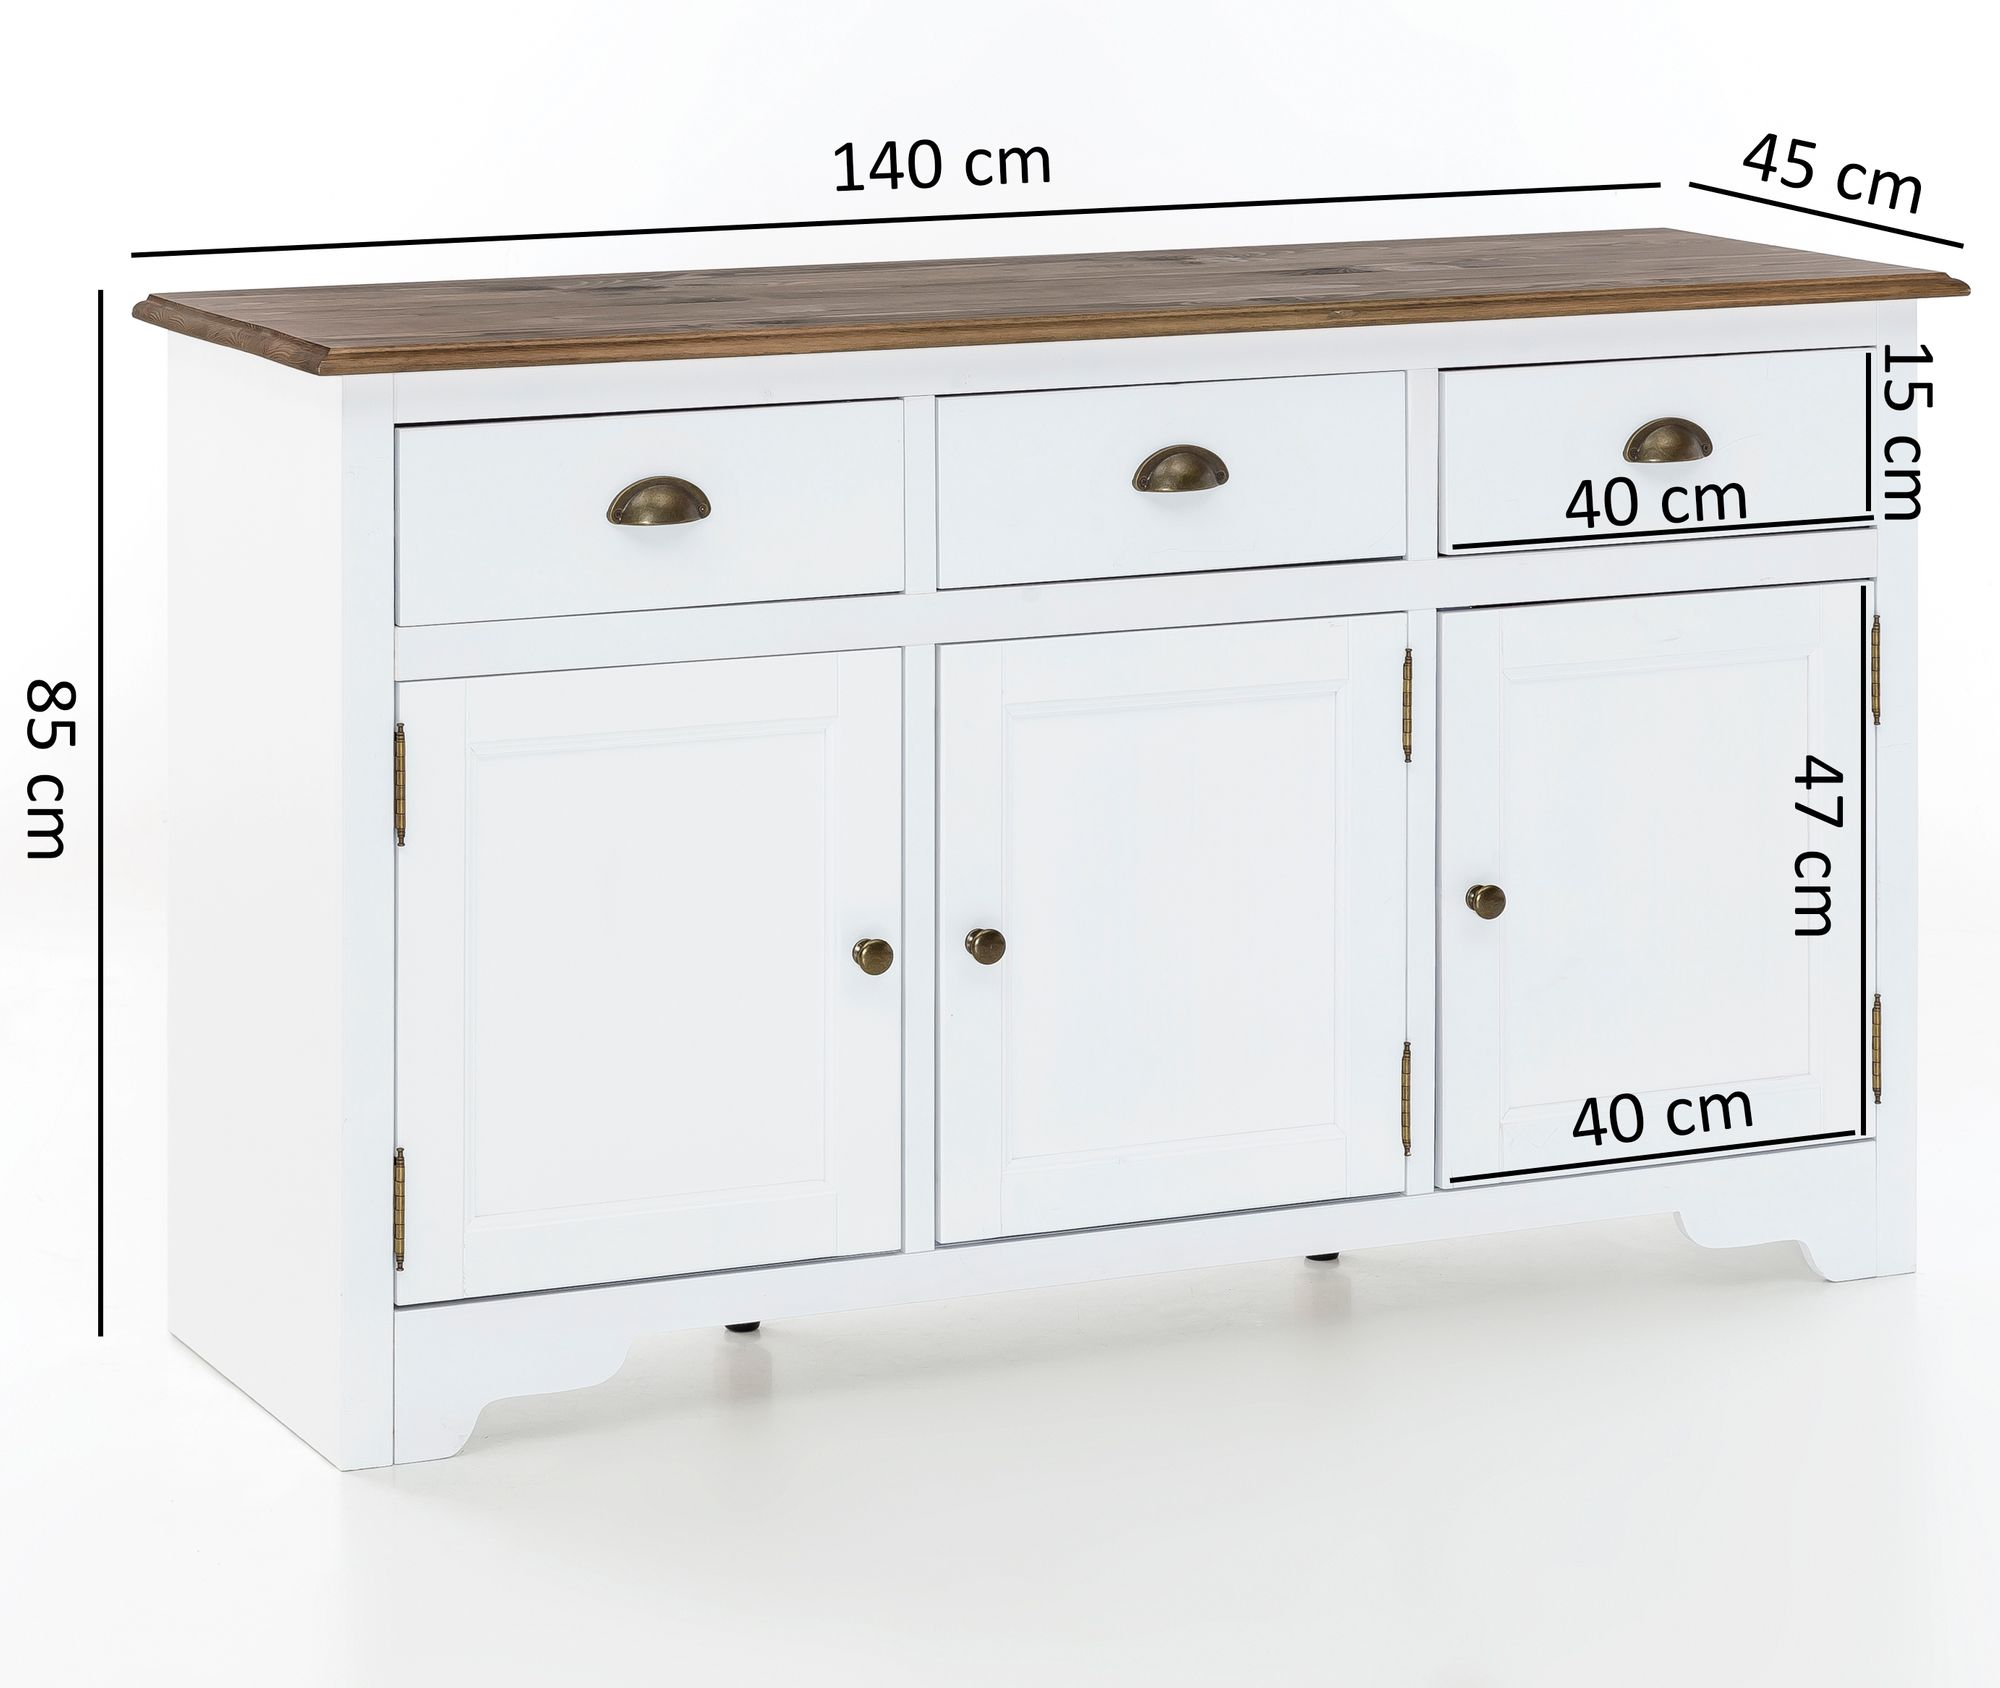 Holz Kommode Flach Highboard Wei Great Great Good Great Sideboard Creme Hochglanz